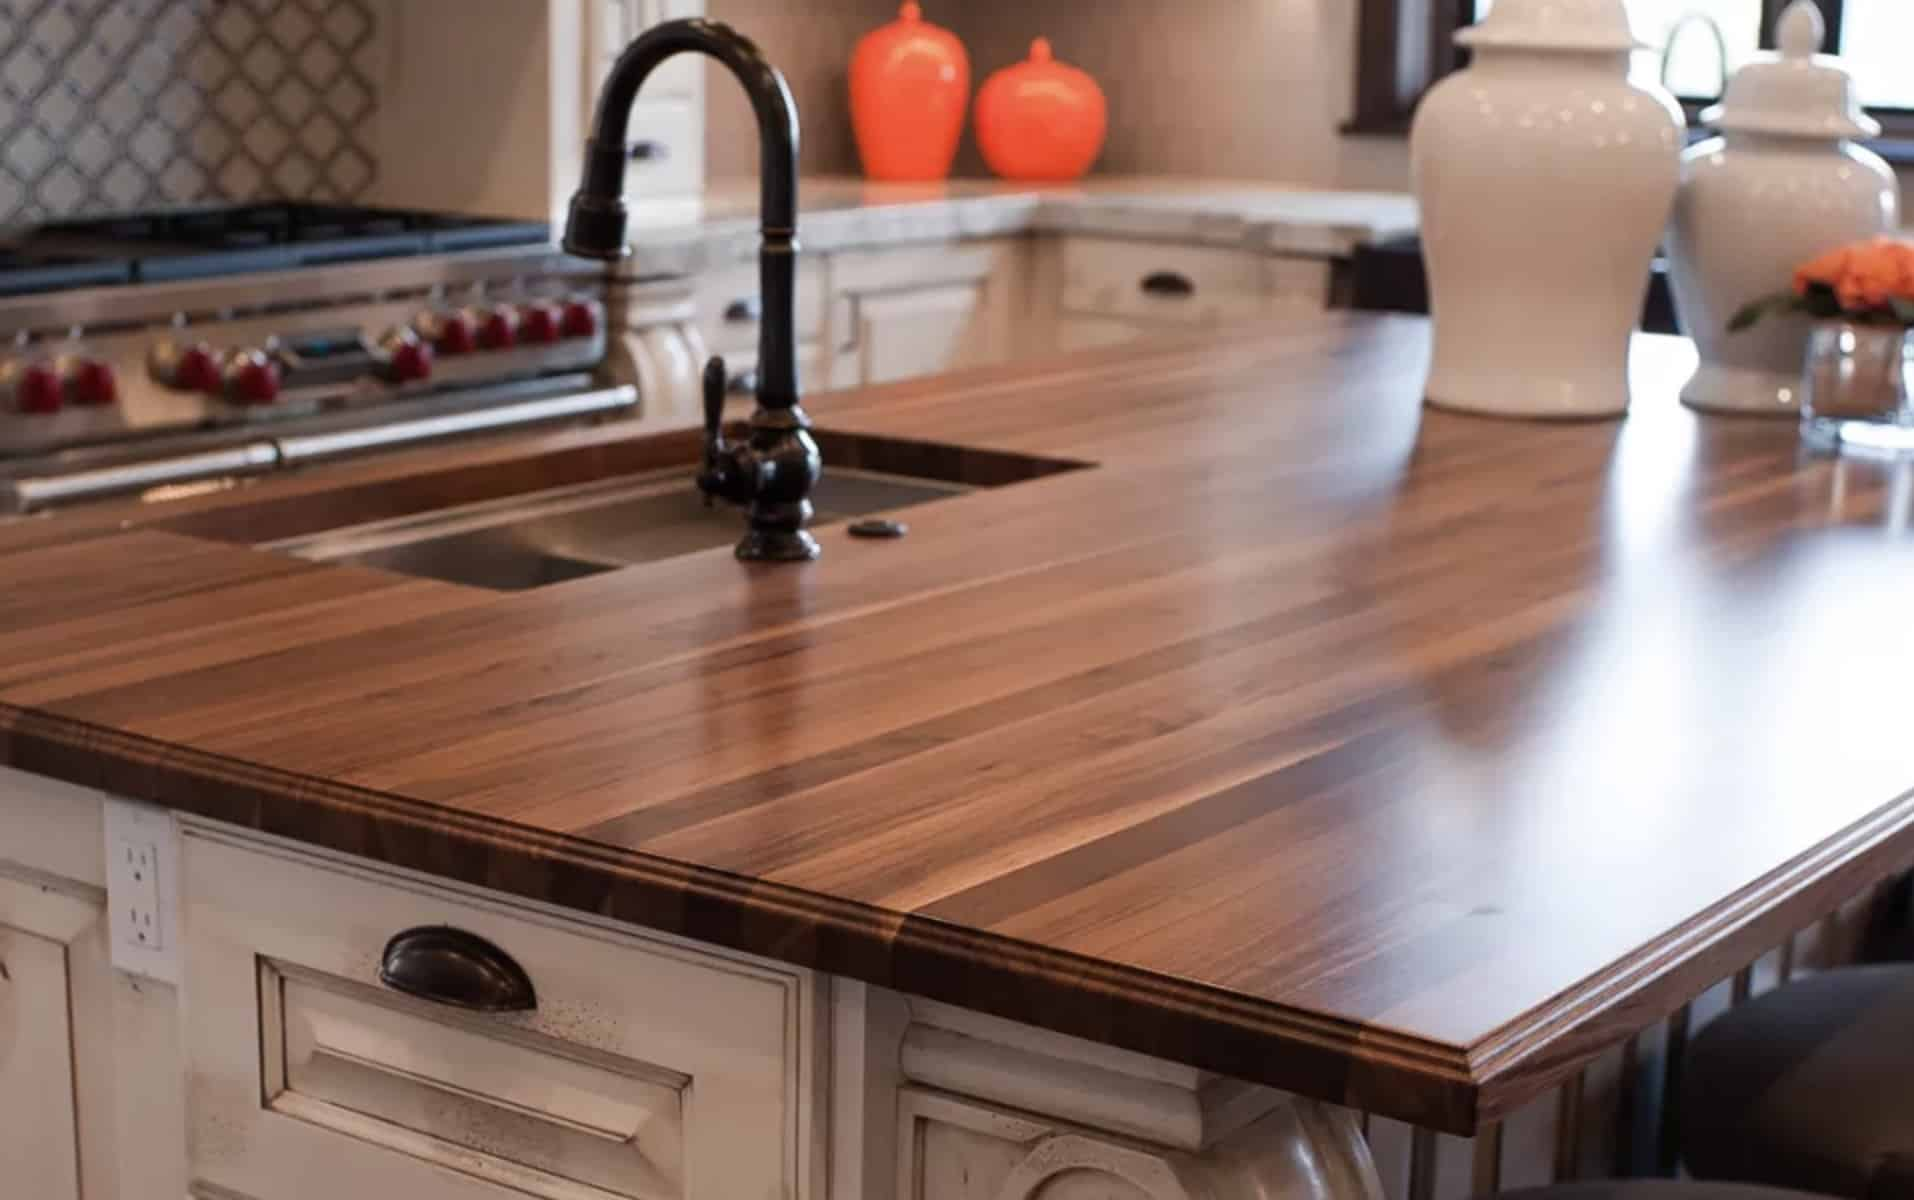 Things To Know Before Getting Butcher Block Countertop